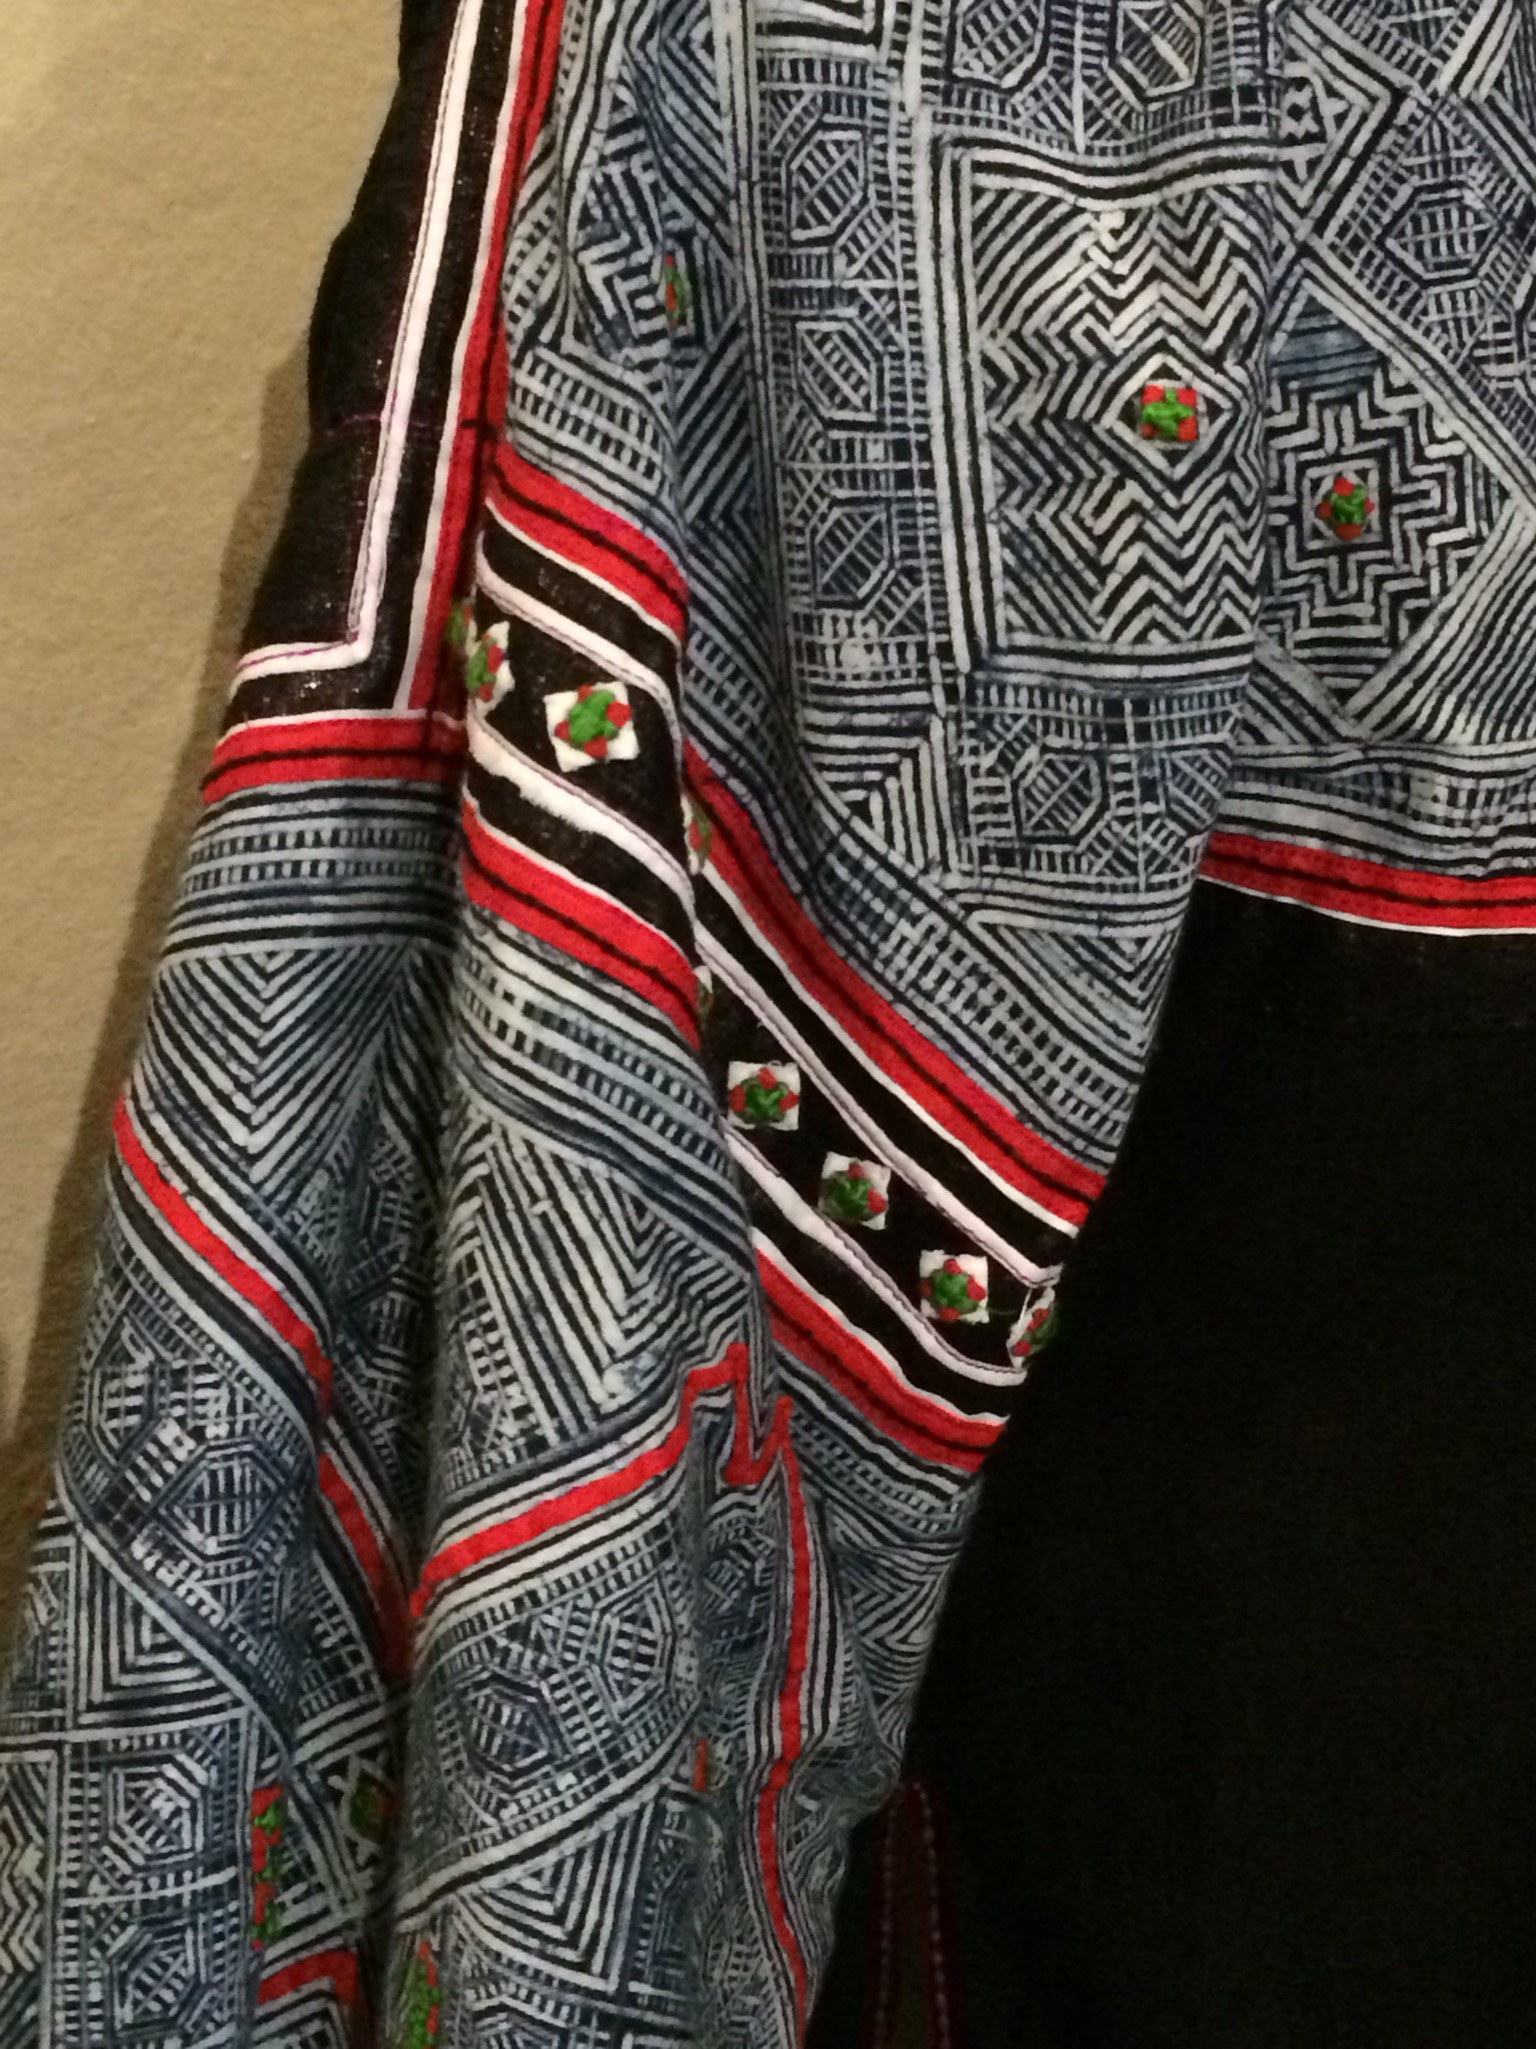 New jacket with batik sleeves.